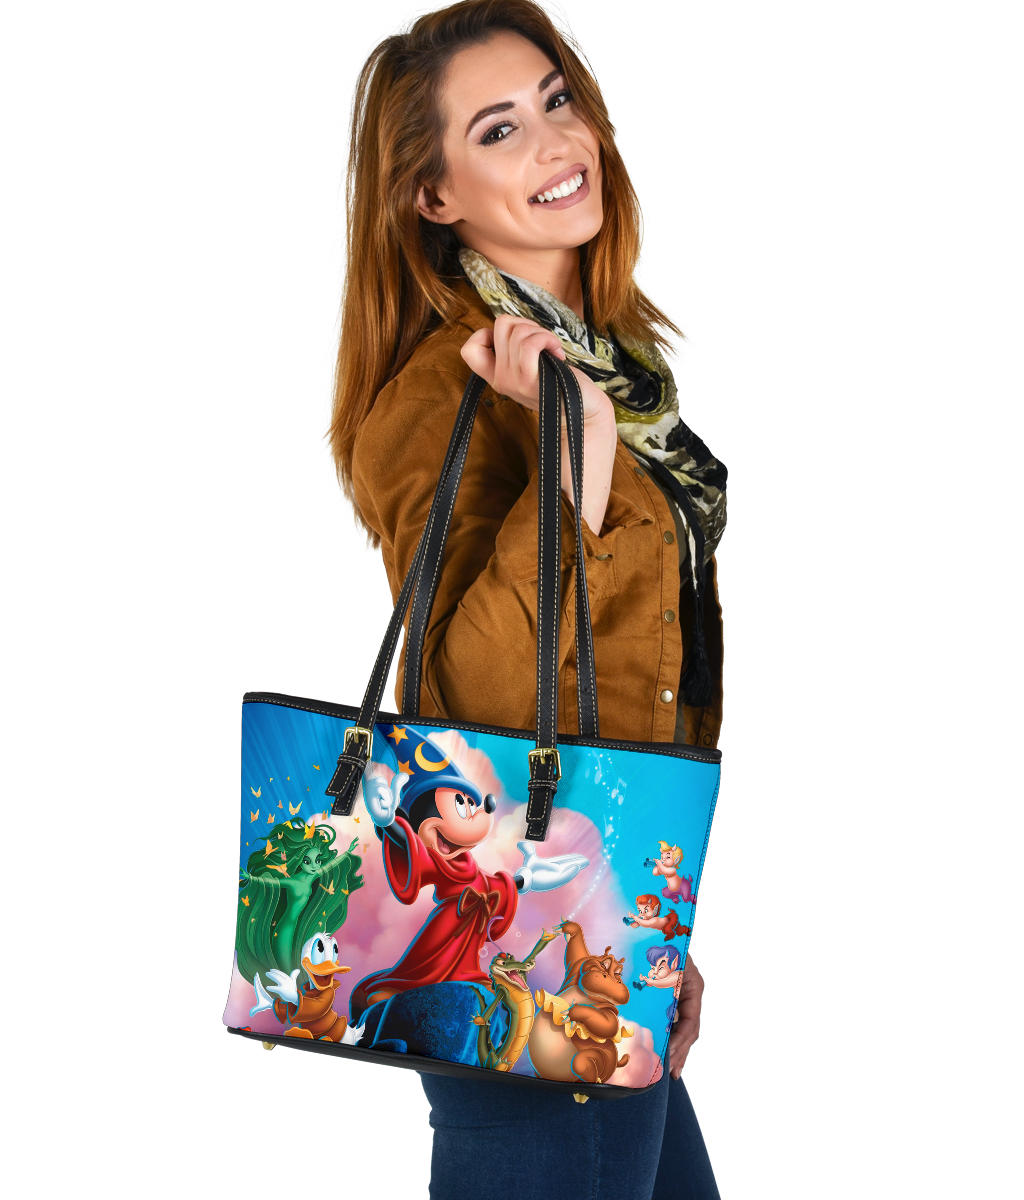 Mickey Fantasia Small Leather Tote  [Express Shipping Applied]